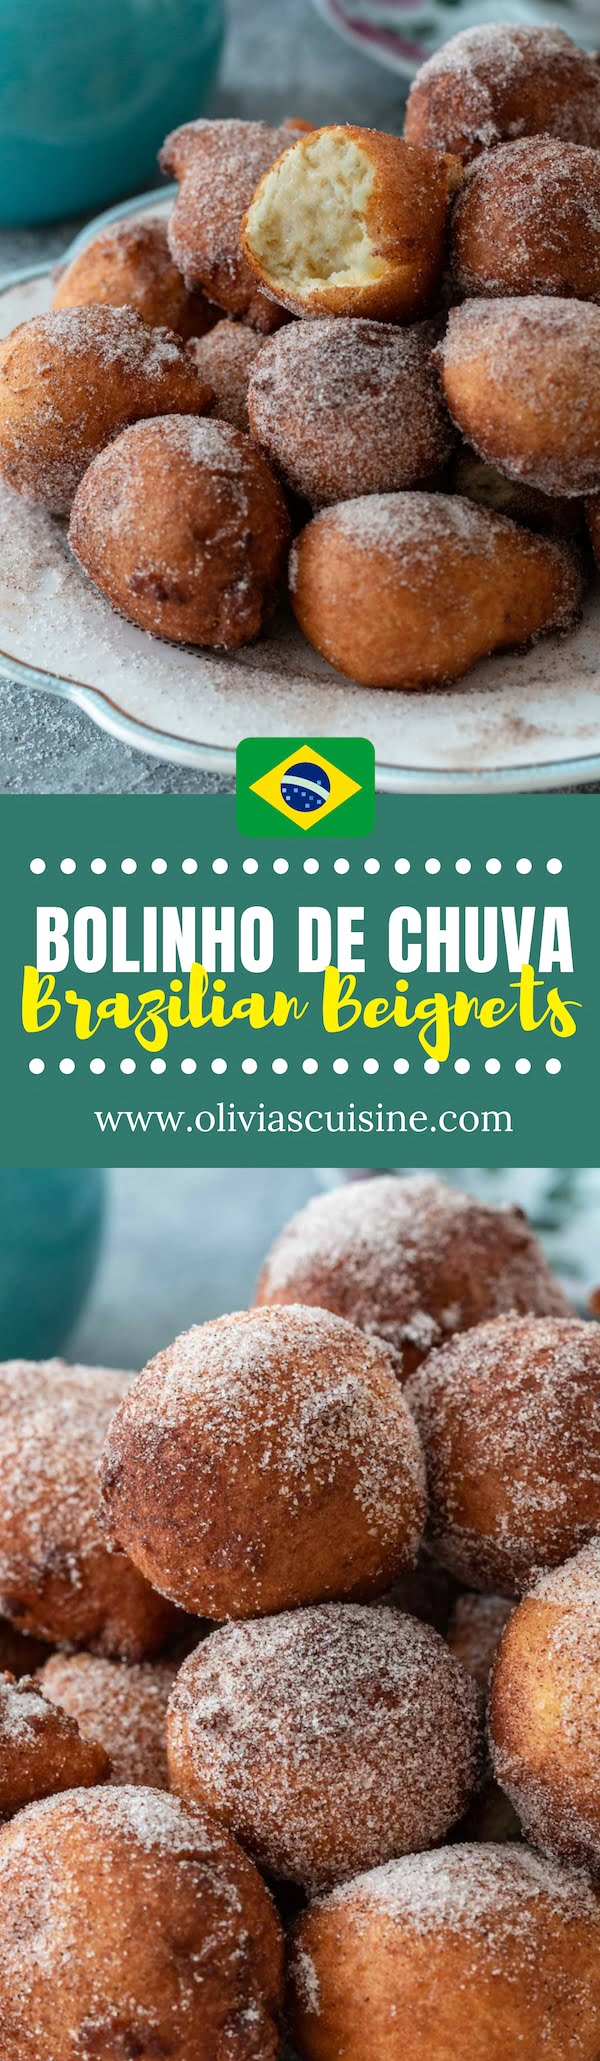 A collage of Brazilian raindrop beignets pictures.